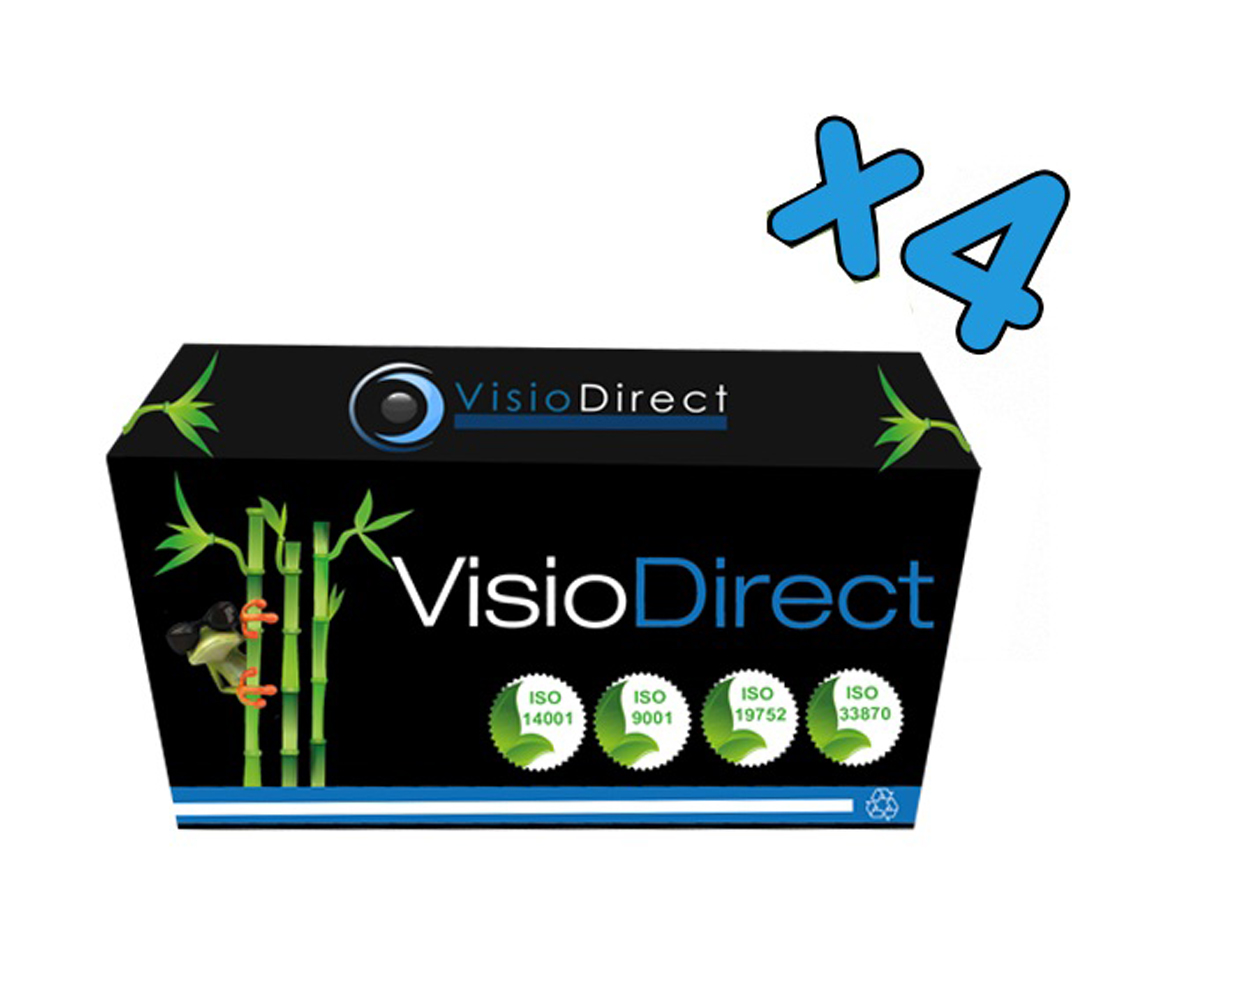 Visiodirect.net